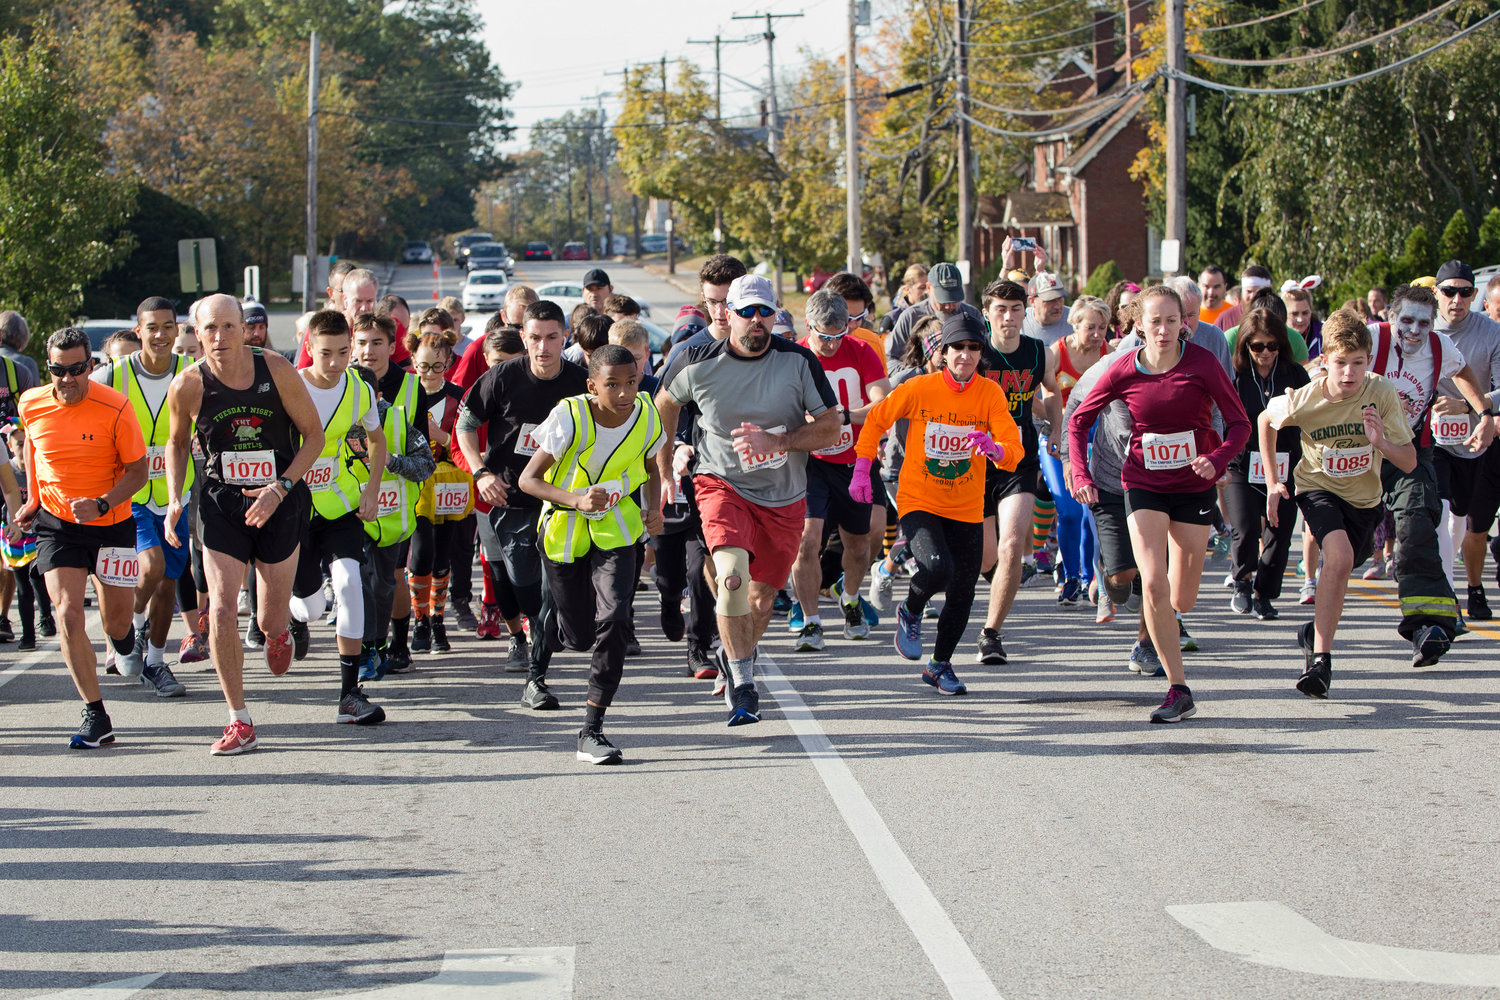 Runners take off at the start of the East Providence Firefighters Freaky 5k, on Sunday.